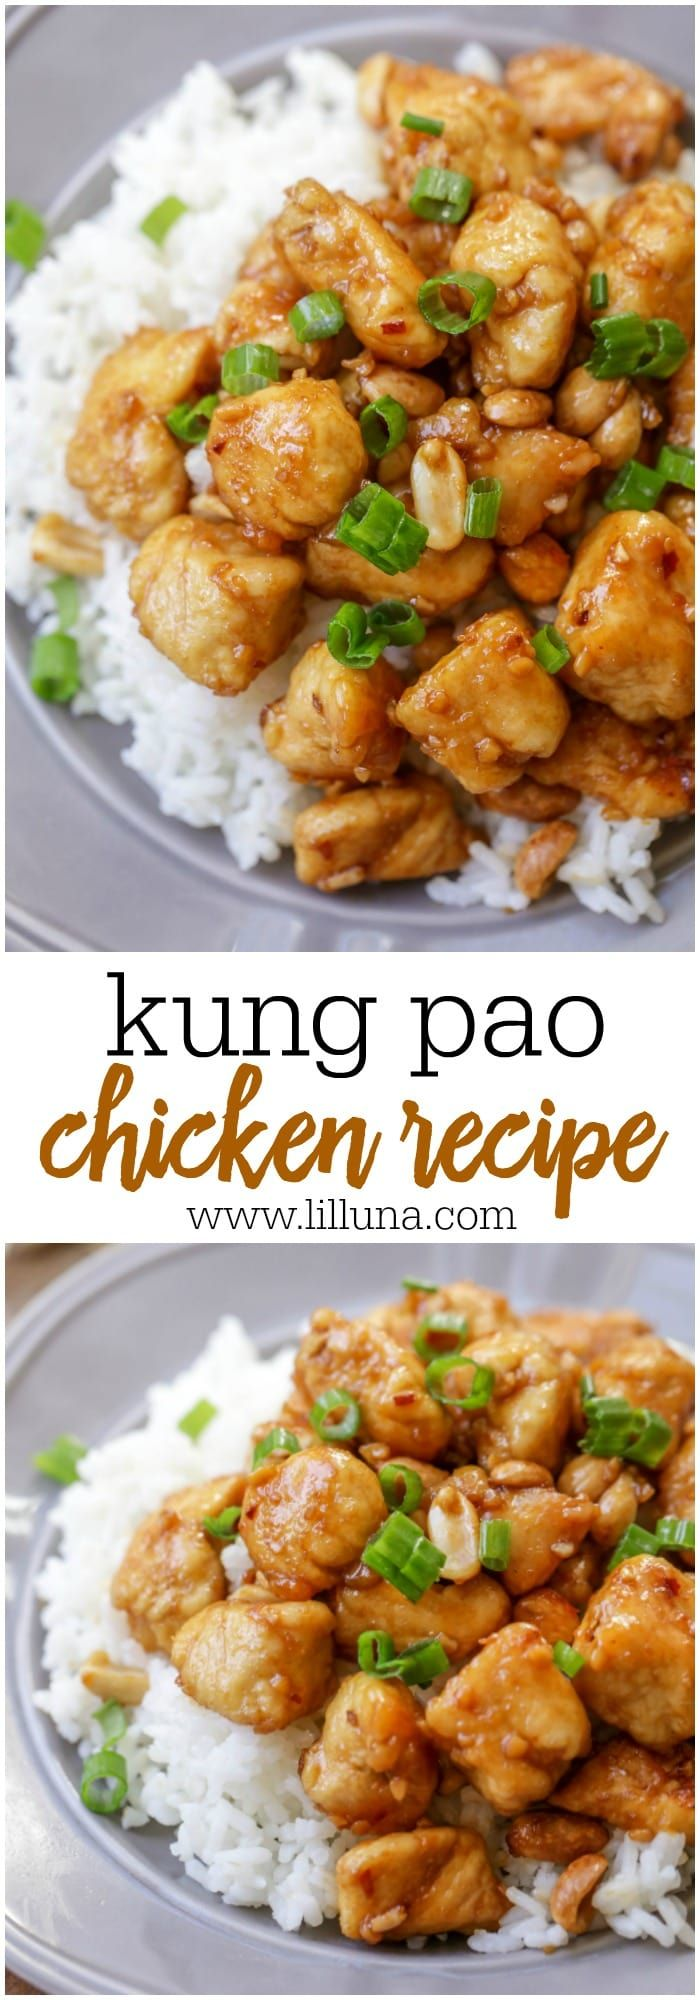 This Homemade Kung pao Chicken is a tasty dinner recipe with a kick! This dish is filled with chicken and nuts and is covered in an amazing sauce, topped with green onions and perfectly served over rice. #kungpaochicken #kungpao #chicken #asianchickenrecipe #asian